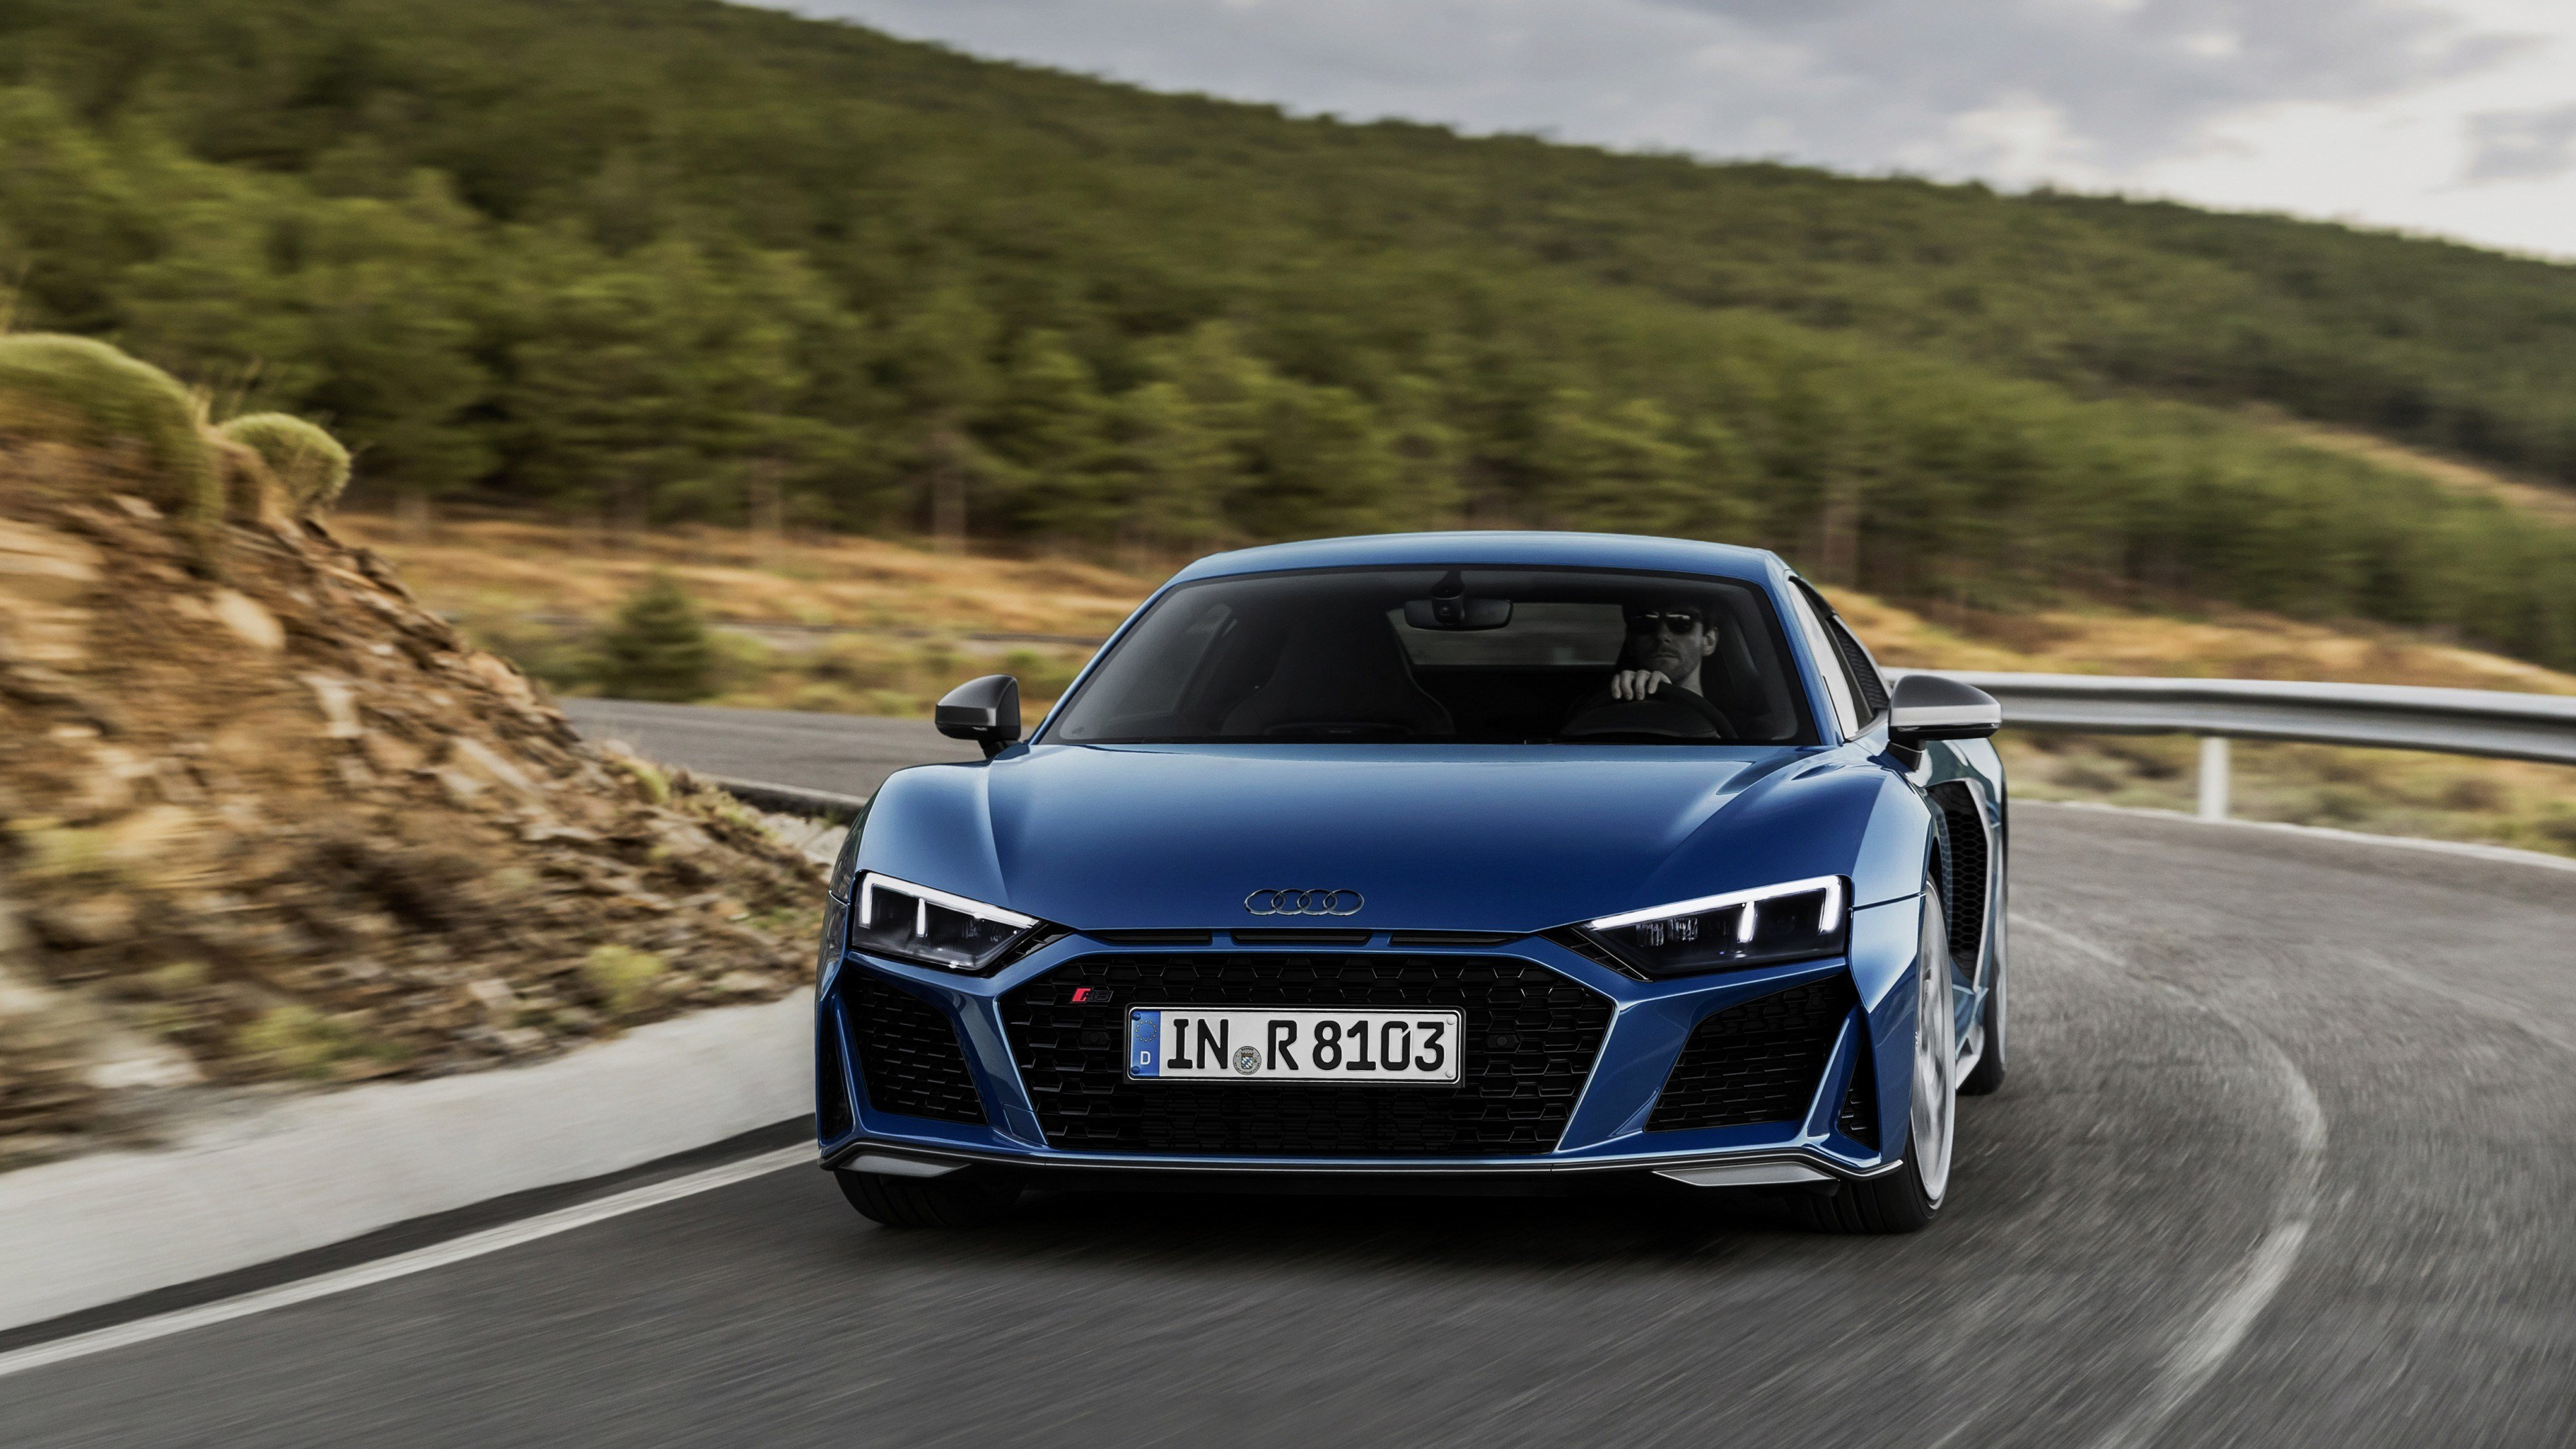 New Wallpaper Audi R8 V10 2019 Cars 4K Cars Bikes 20743 On This Month